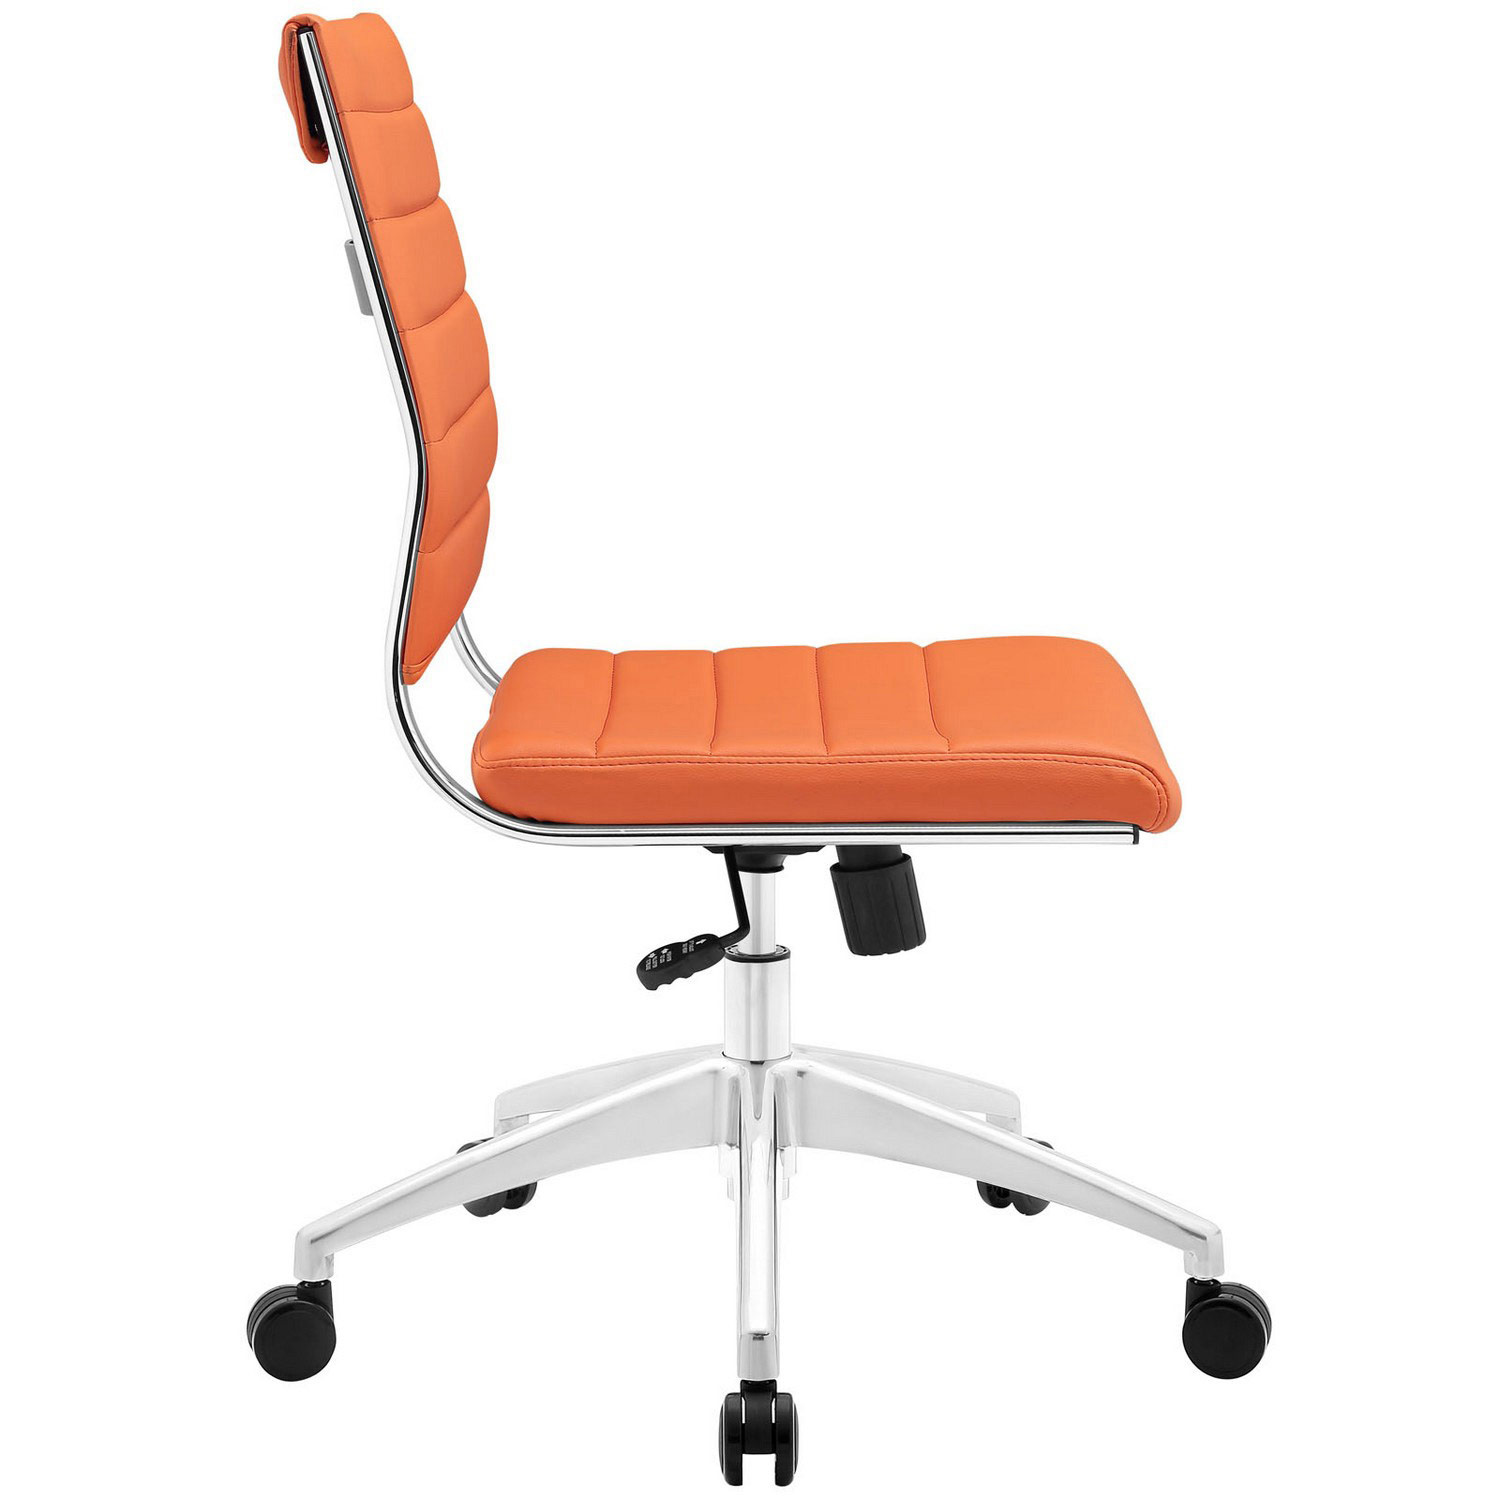 Modway Jive Armless Mid Back Office Chair - Orange